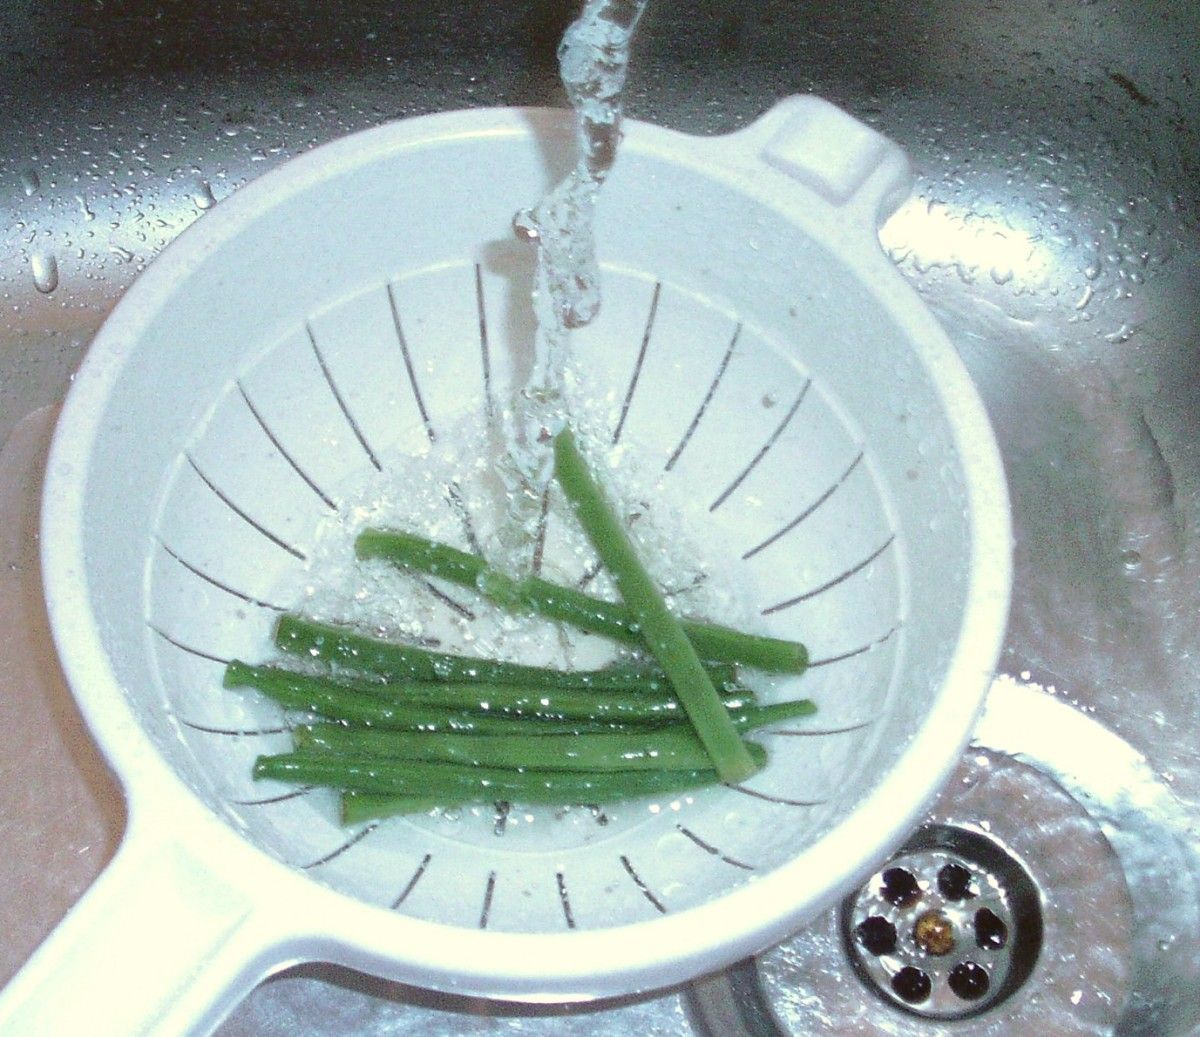 Washing green beans before cooking